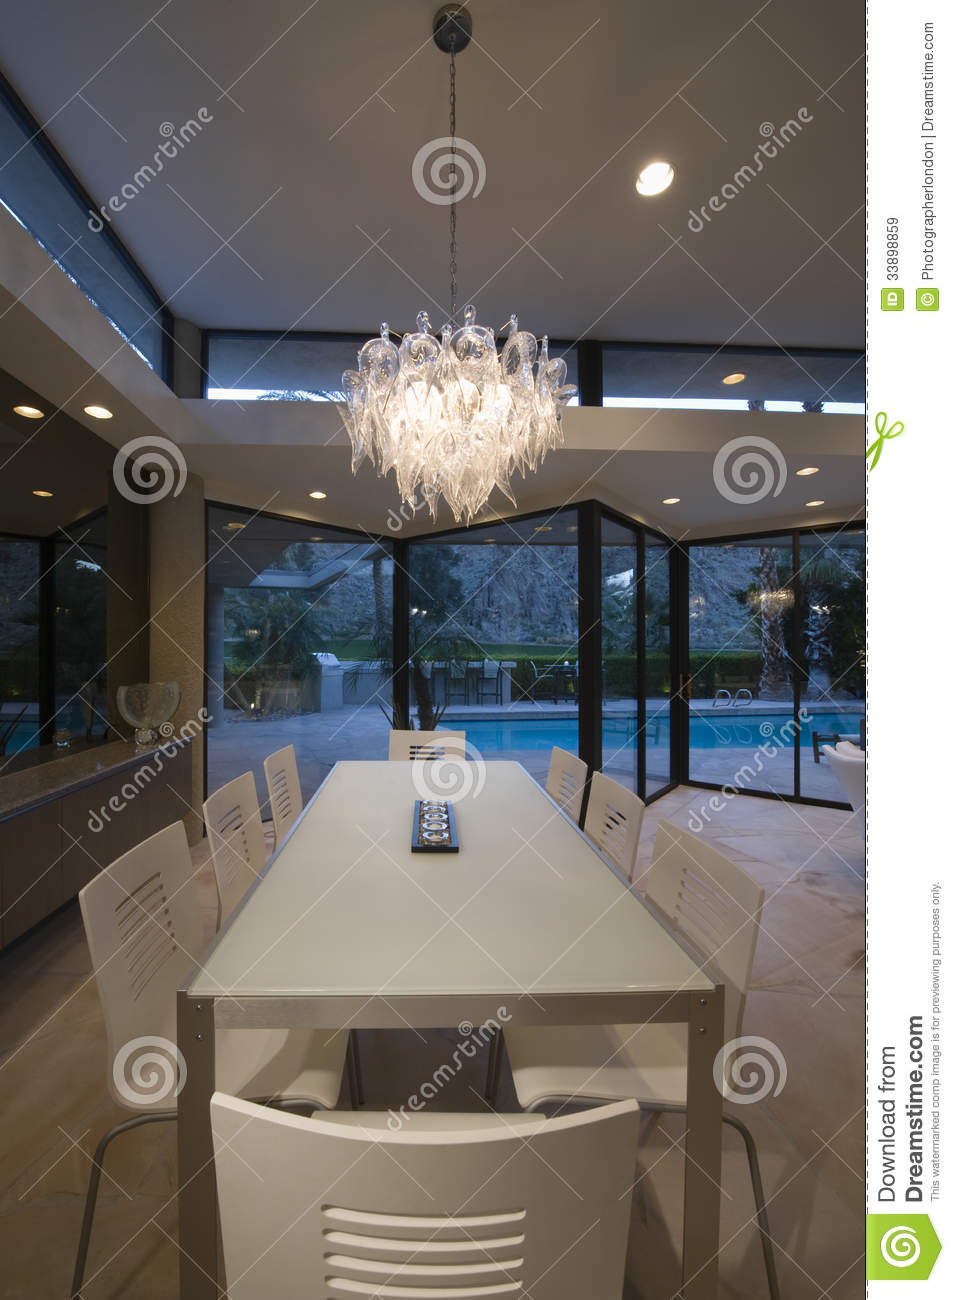 Chandelier over dining table at house royalty free stock images image 3389 - Suspension plusieurs boules ...